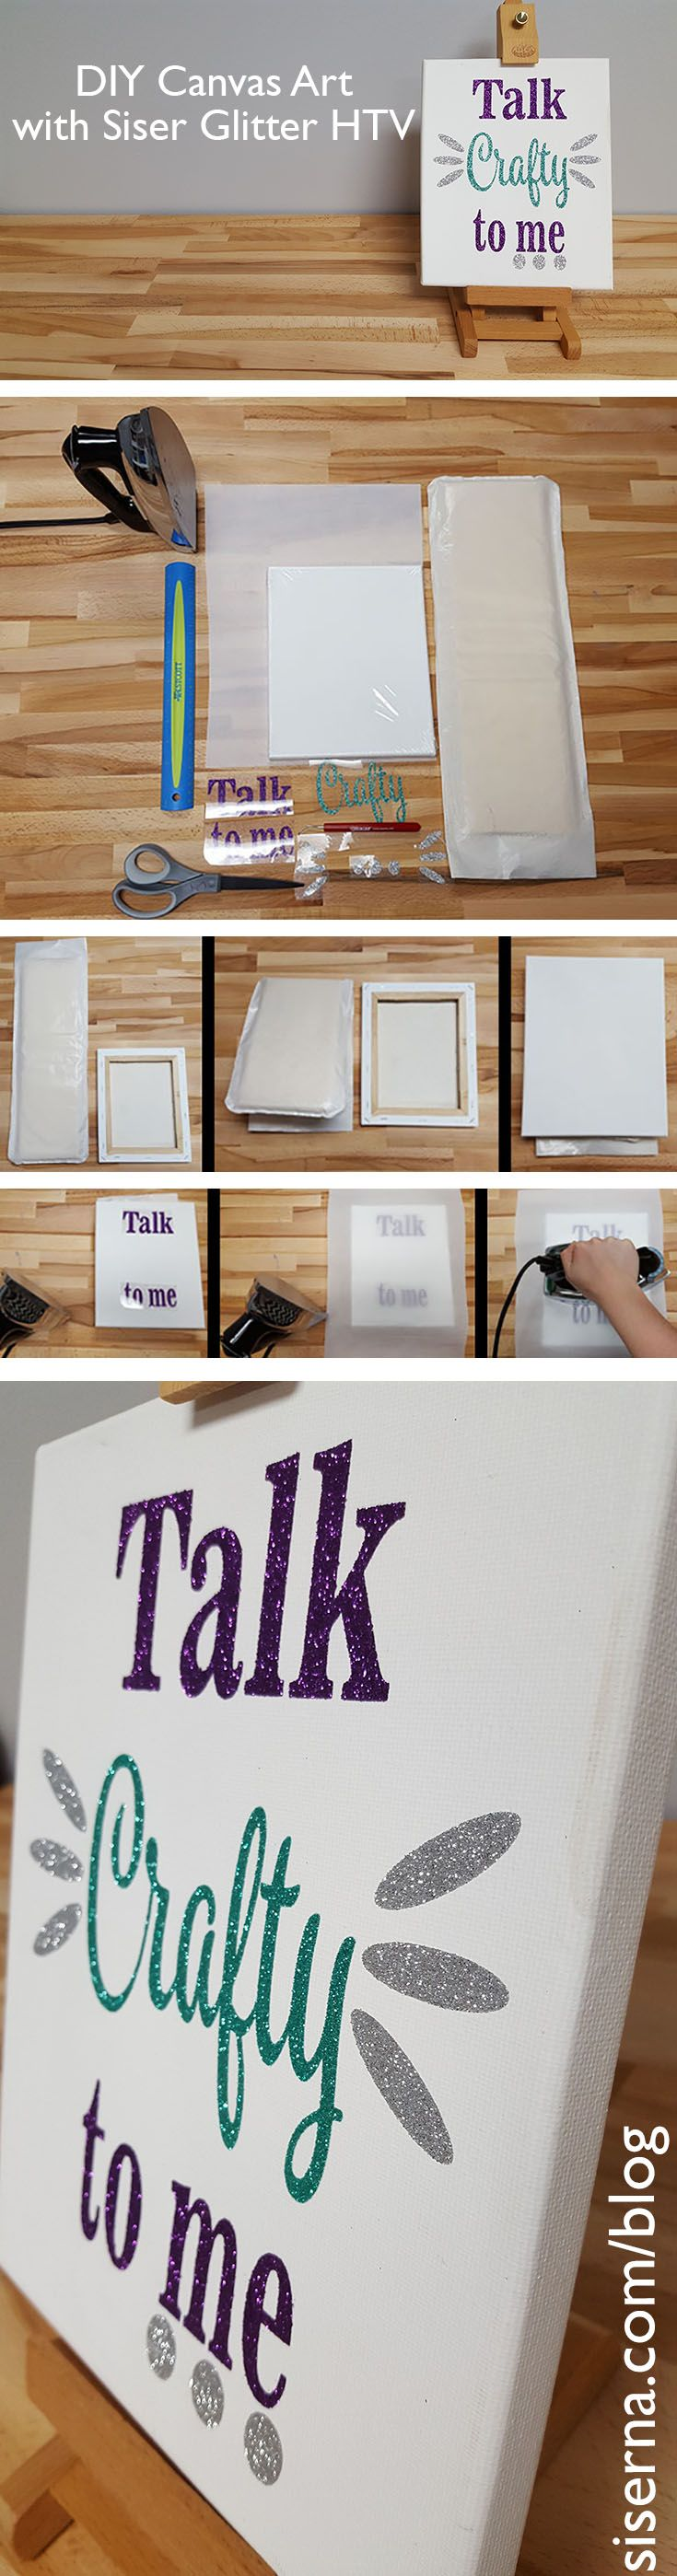 best 25+ vinyl canvas ideas ideas only on pinterest | christmas